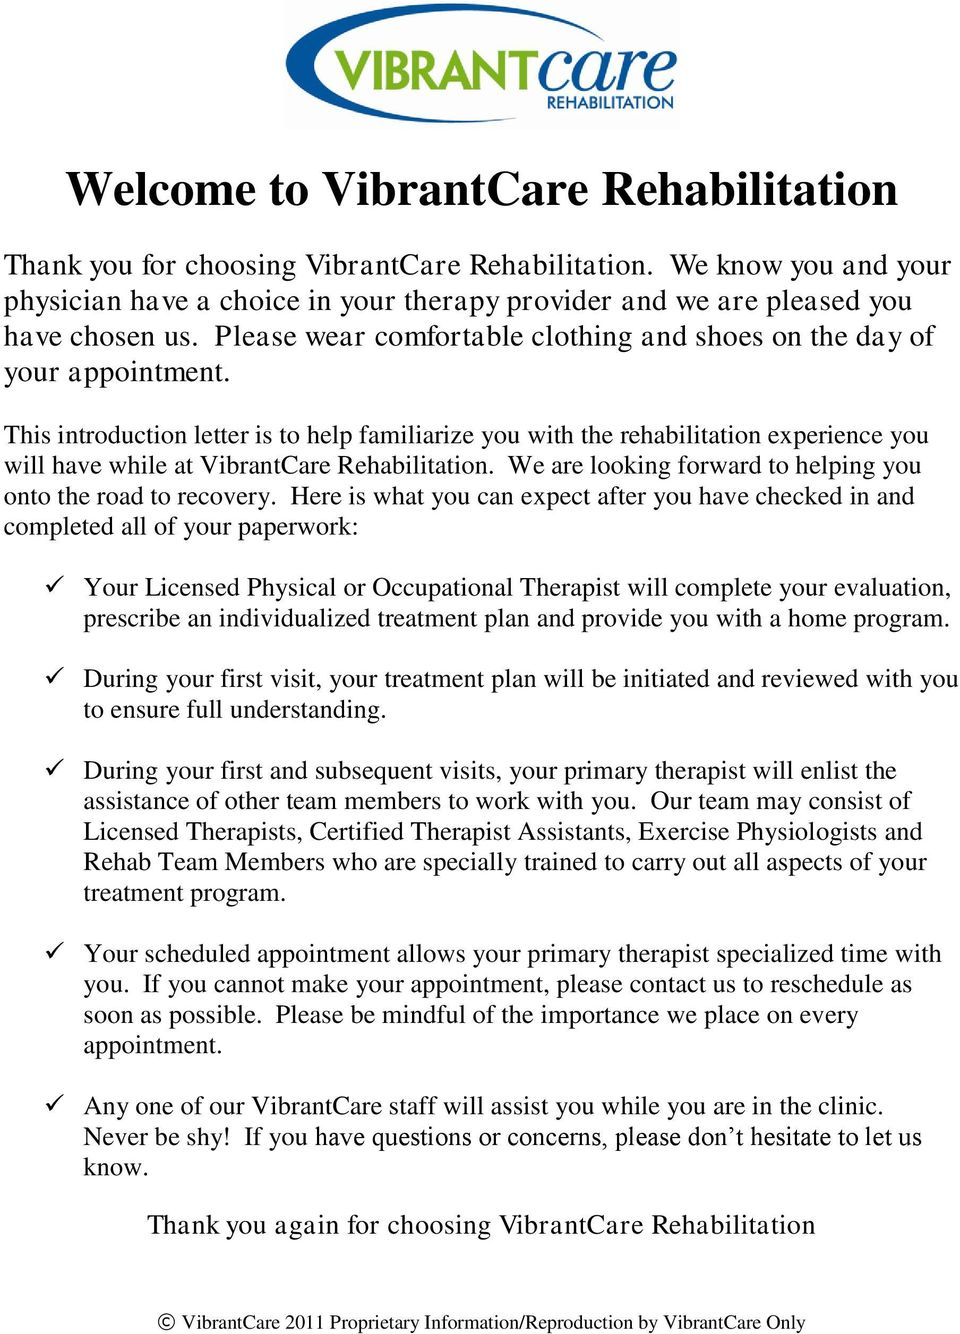 This introduction letter is to help familiarize you with the rehabilitation experience you will have while at VibrantCare Rehabilitation.